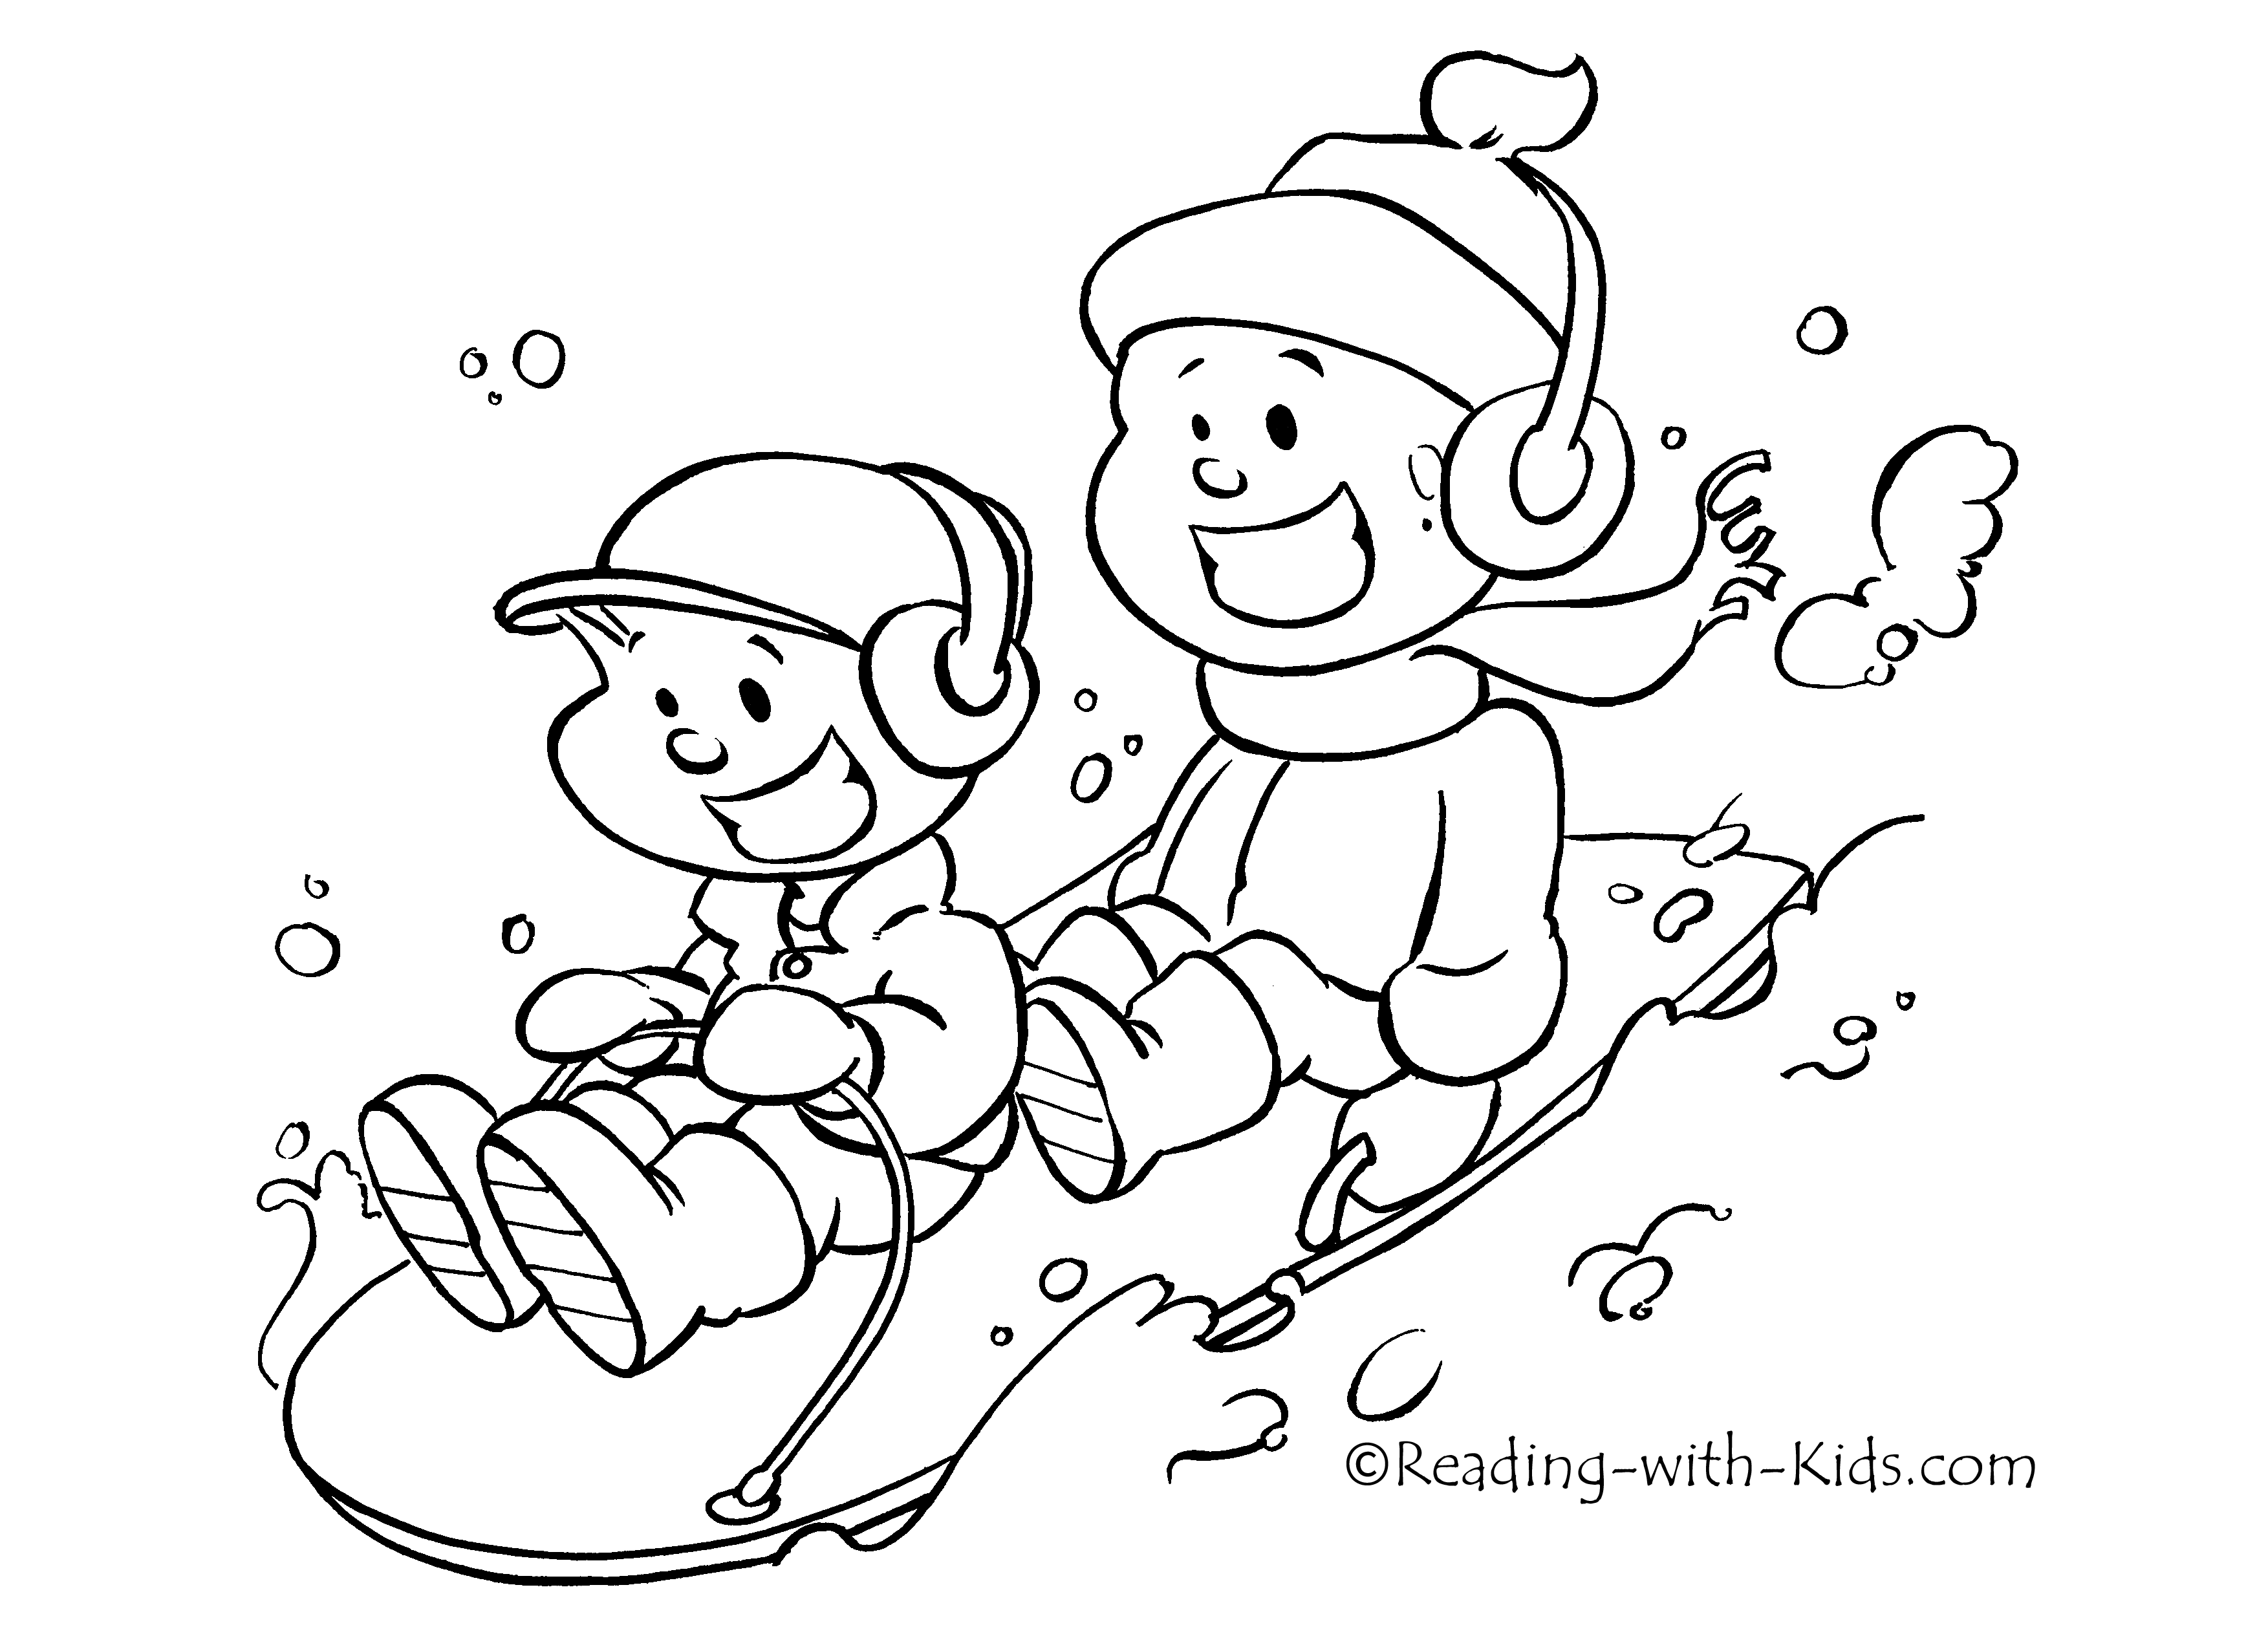 sled coloring sheet sled coloring pages coloring pages to download and print coloring sheet sled